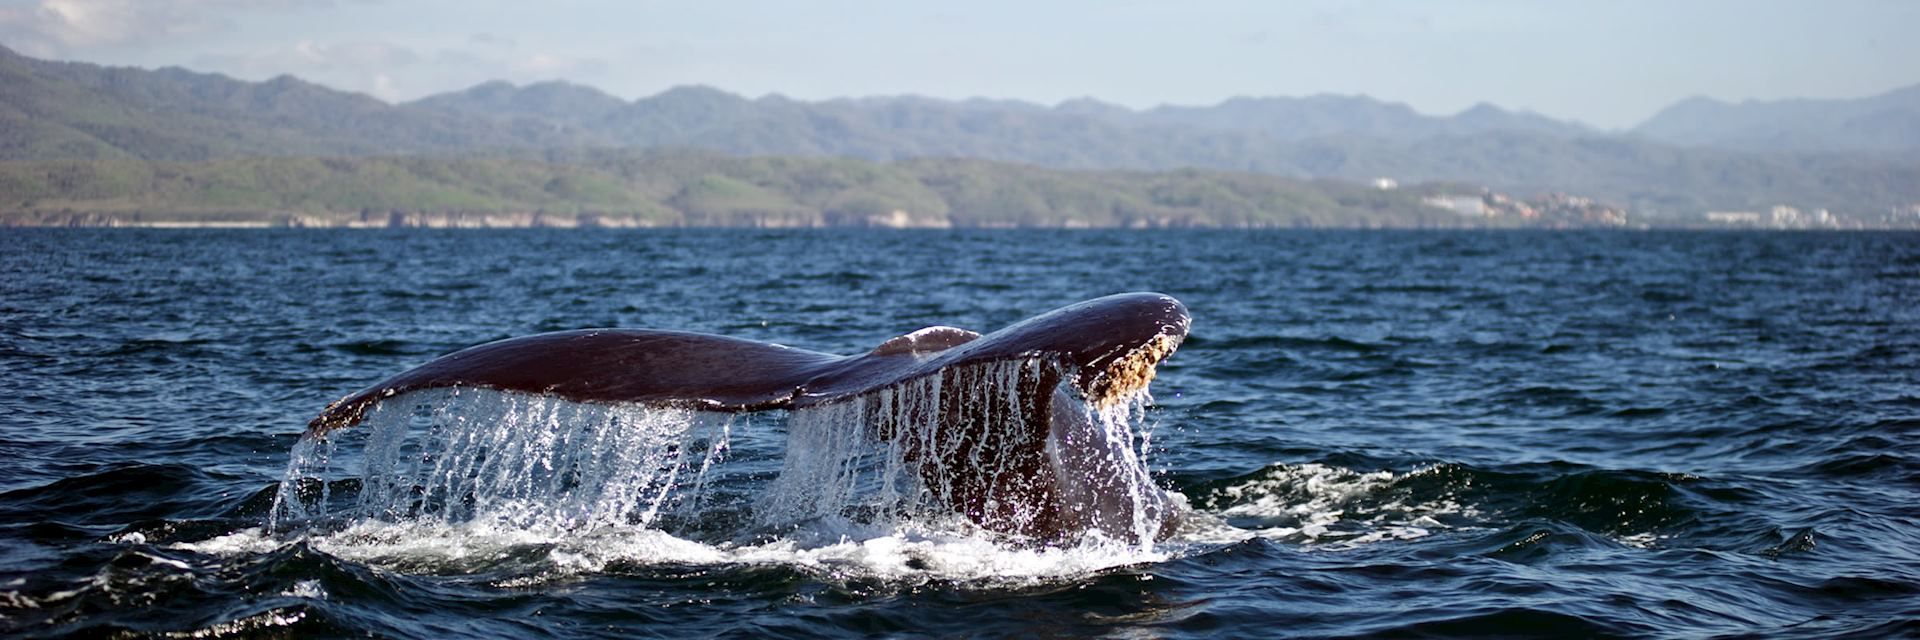 A whale surfaces off the coast of Puerto Vallarta